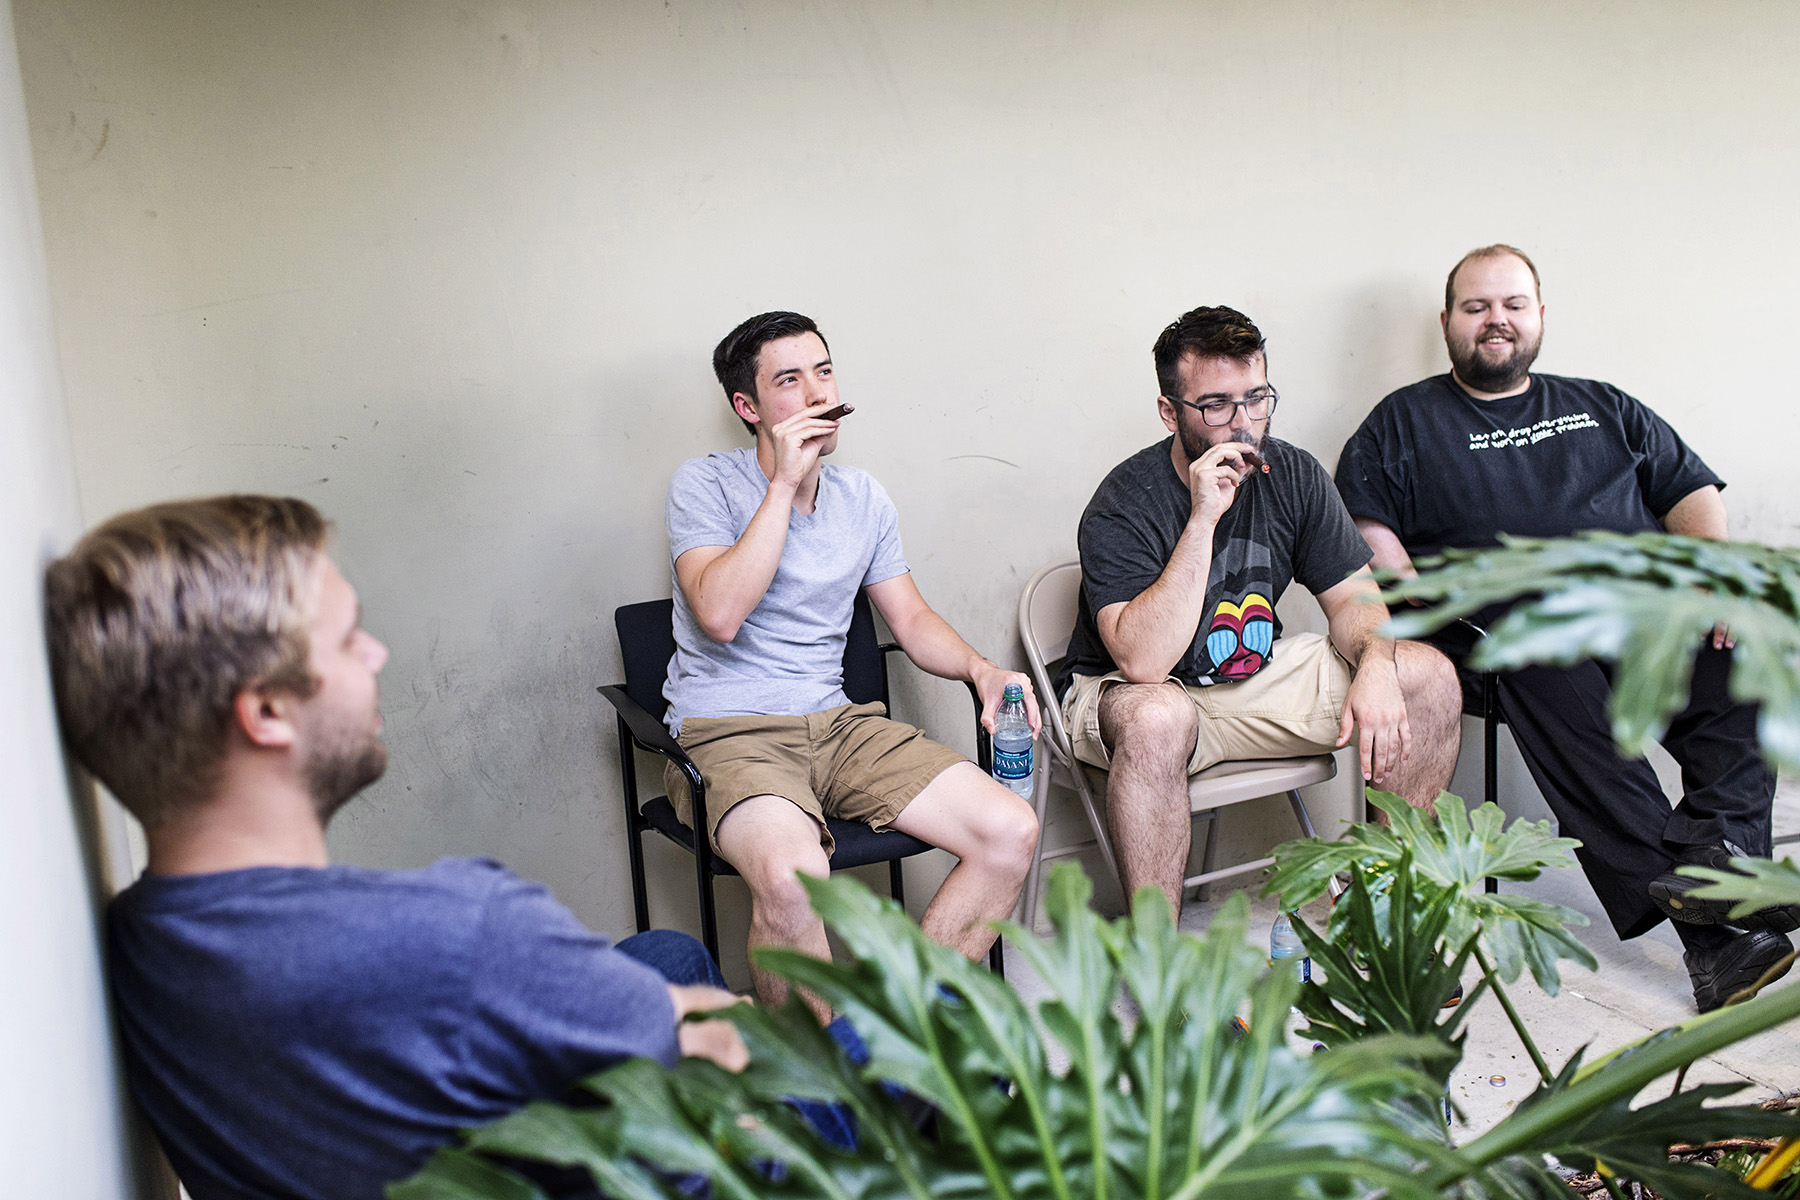 Connor McGill, second from right, smokes cigars with his co-workers on his last day of work at Hackers/Founders, an organization that helps early-stage entrepreneurs located in the Hacker Dojo in Mountain View, California in August 2014. McGill was leaving his job to pursue an undergraduate degree at UC Davis.